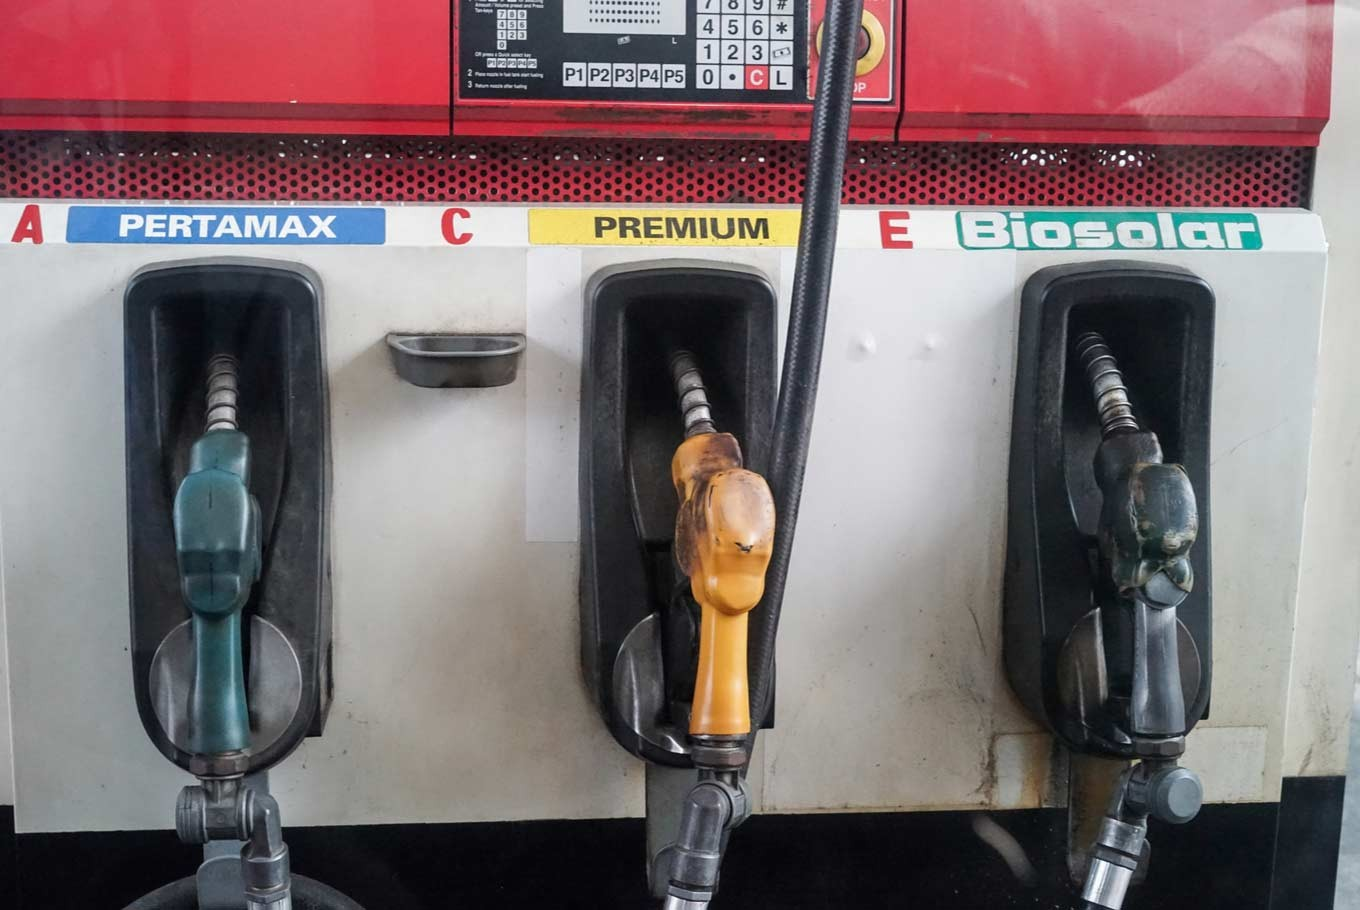 Pertamina lowers subsidized, non-subsidized fuel prices